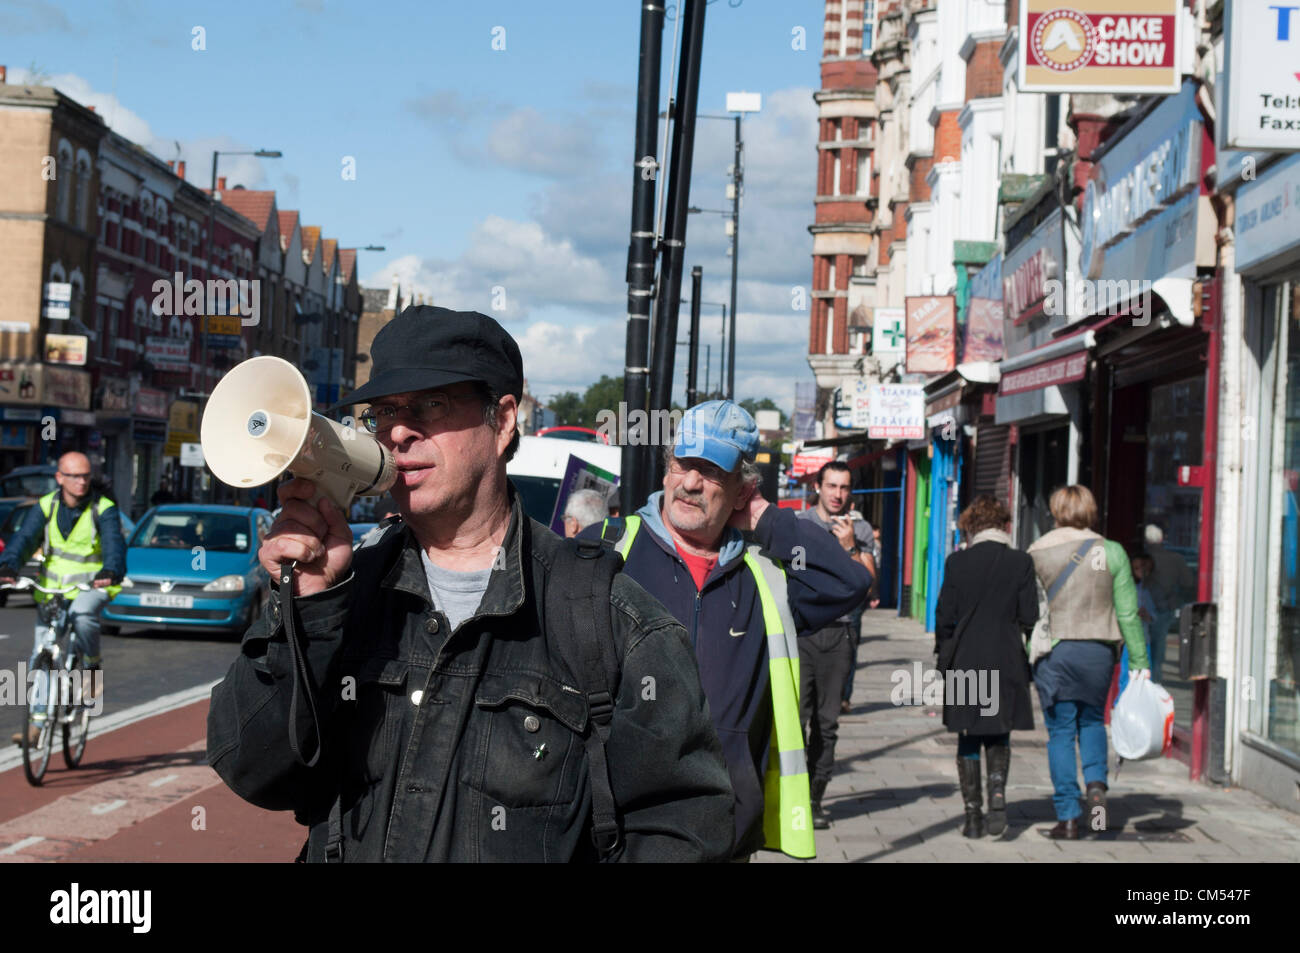 06/10/2012 Haringey, London UK, a protester with a loud hailer draws the attention of passers by as Haringey housing - Stock Image